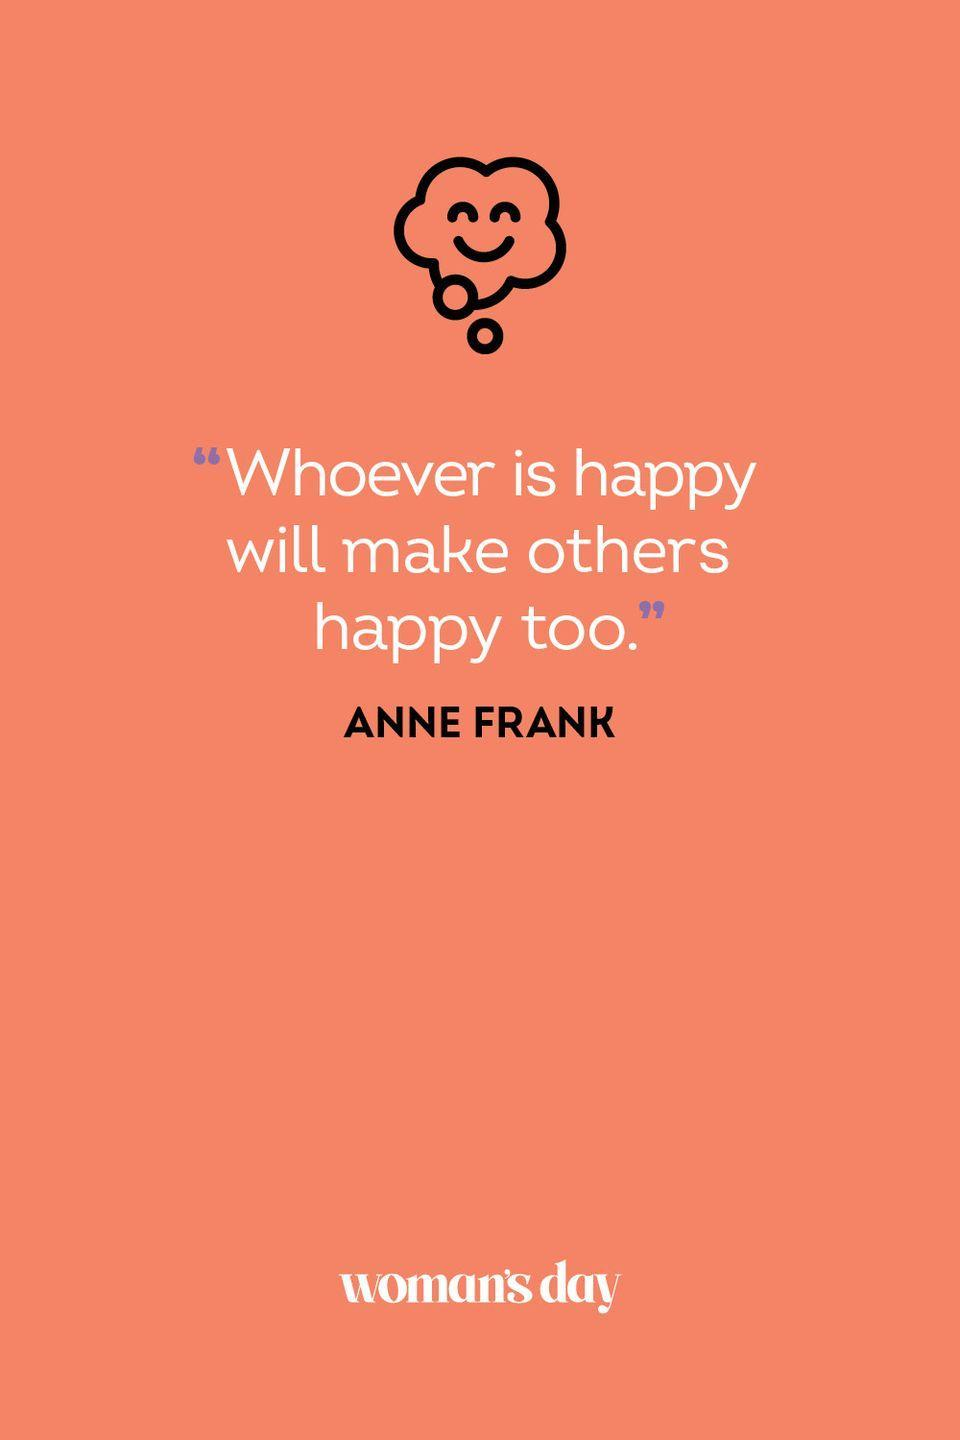 <p>Whoever is happy will make others happy too.</p>